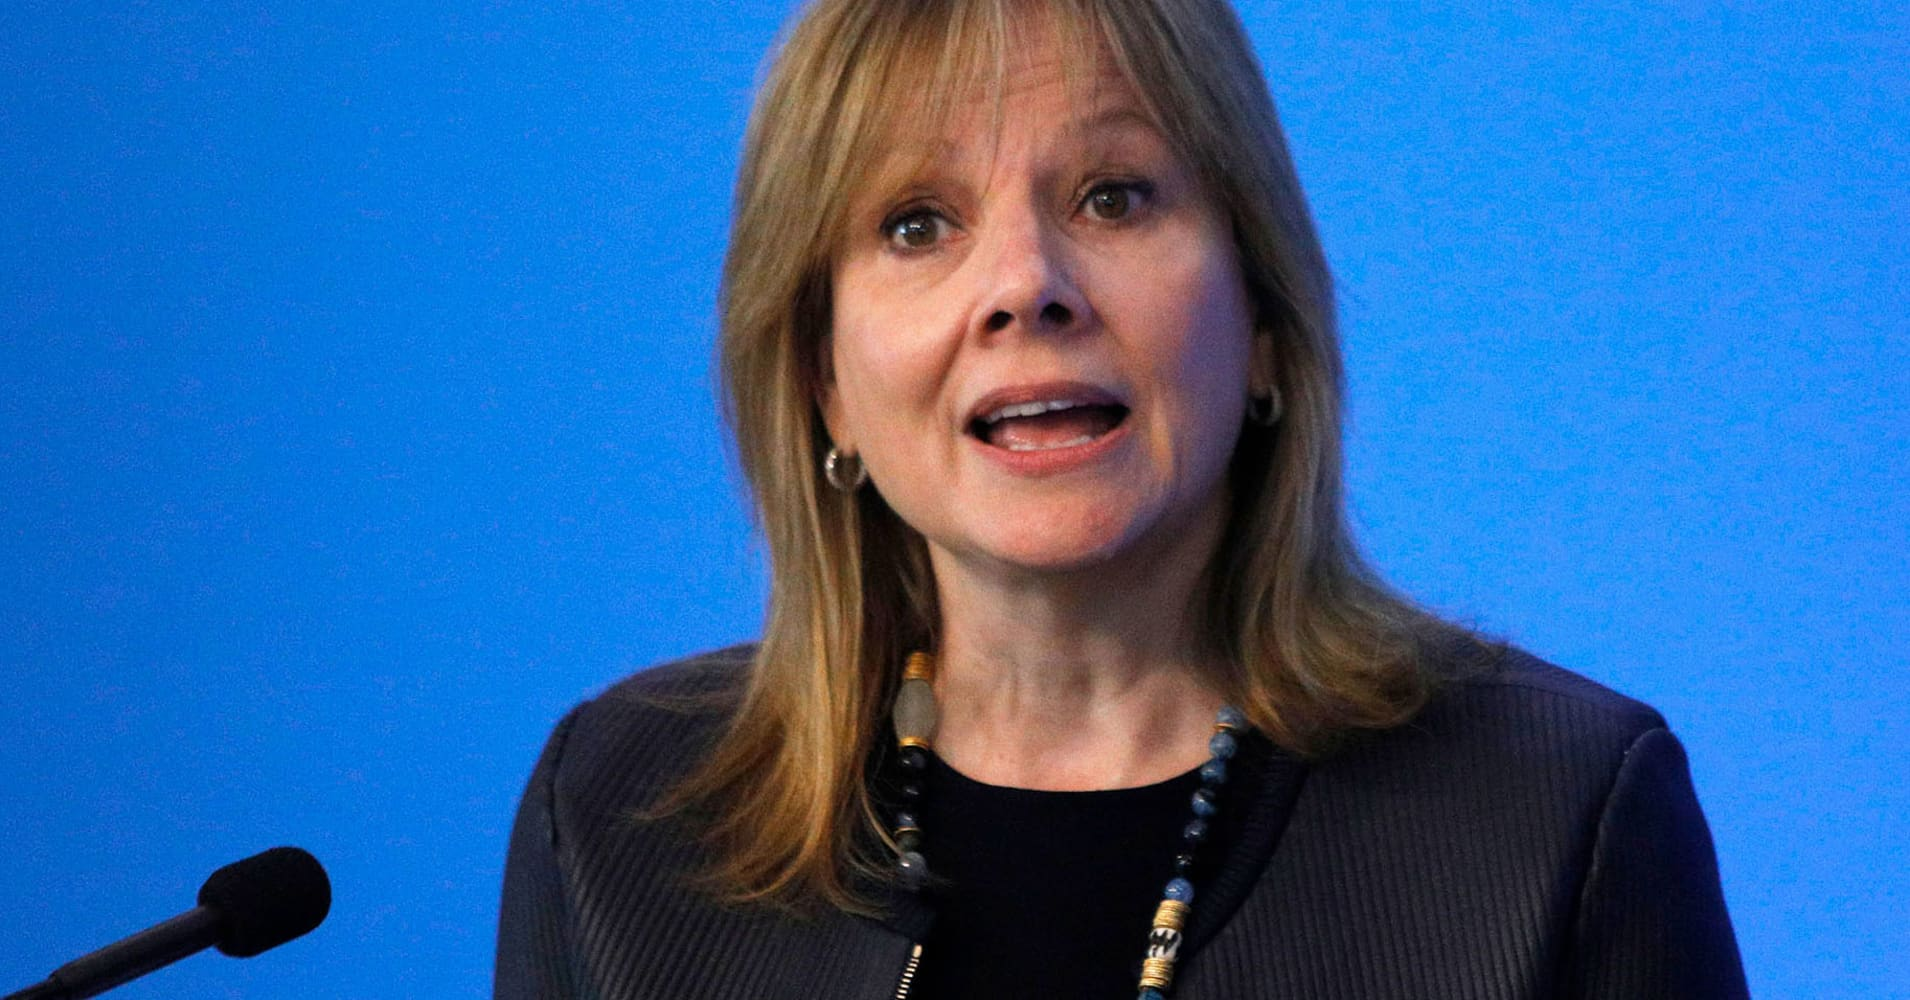 GM says 2018 earnings exceeded expectations and 2019 looks even better